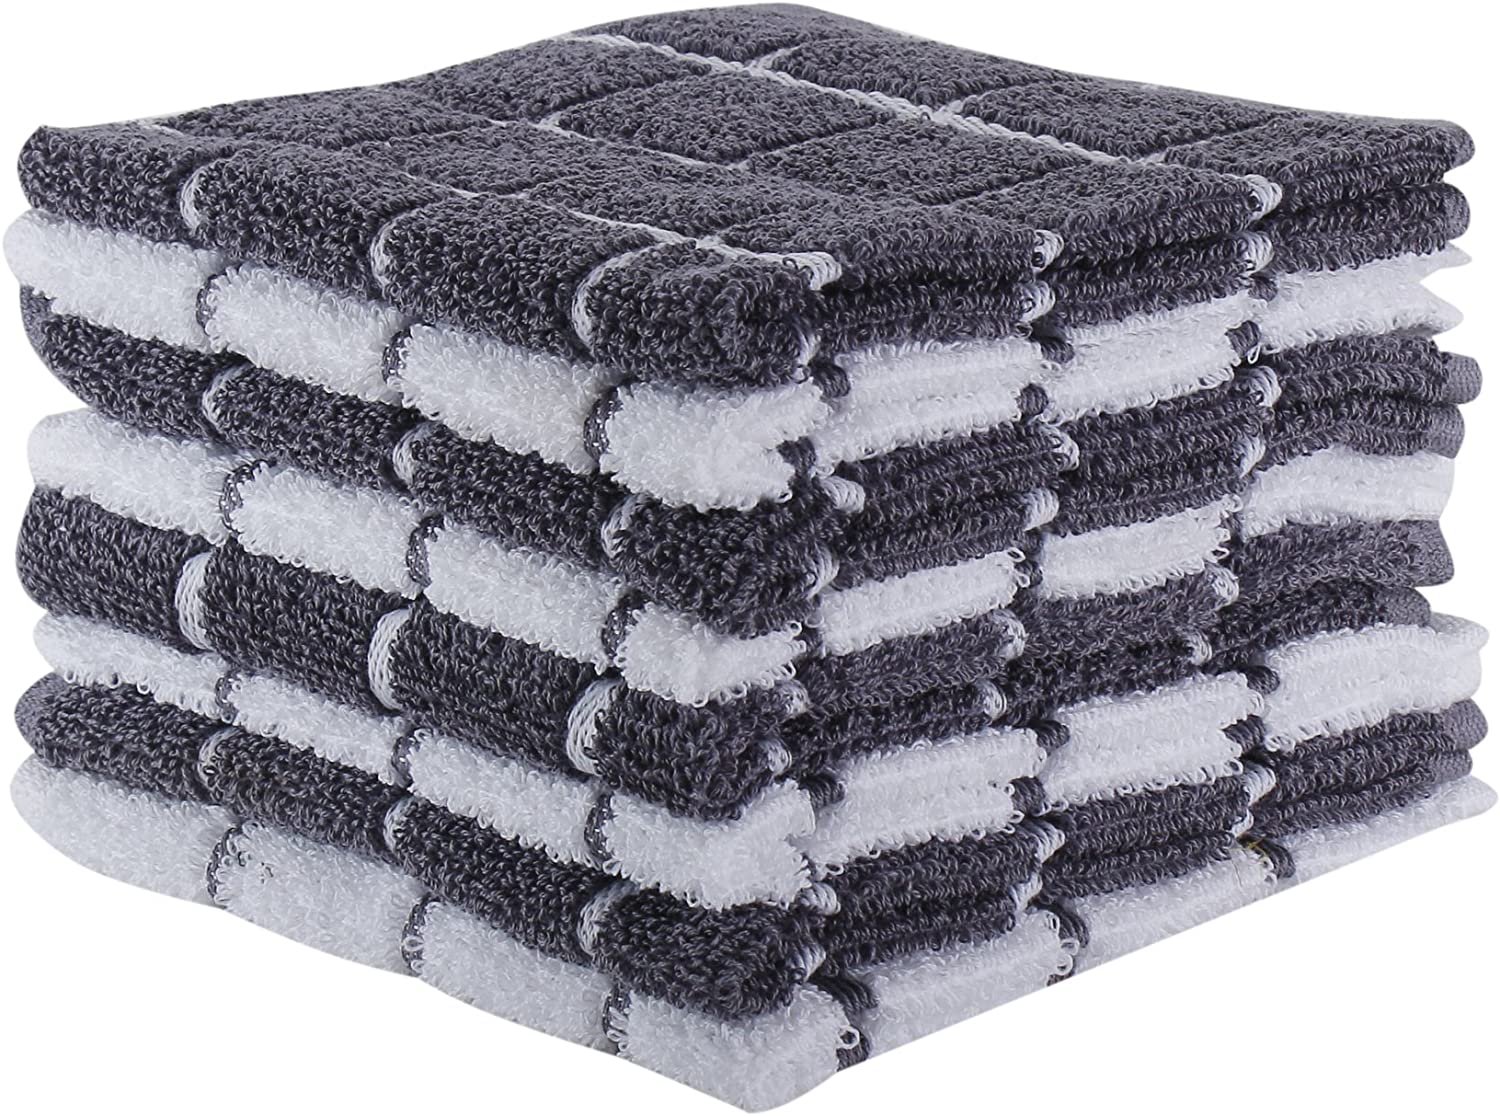 """The Weaver's Blend Set of 8 Terry Dish Cloths, Check Design, 100% Cotton, Absorbent, Size 12""""x12"""", Grey Check,Kitchen Towels and Dish Cloths"""